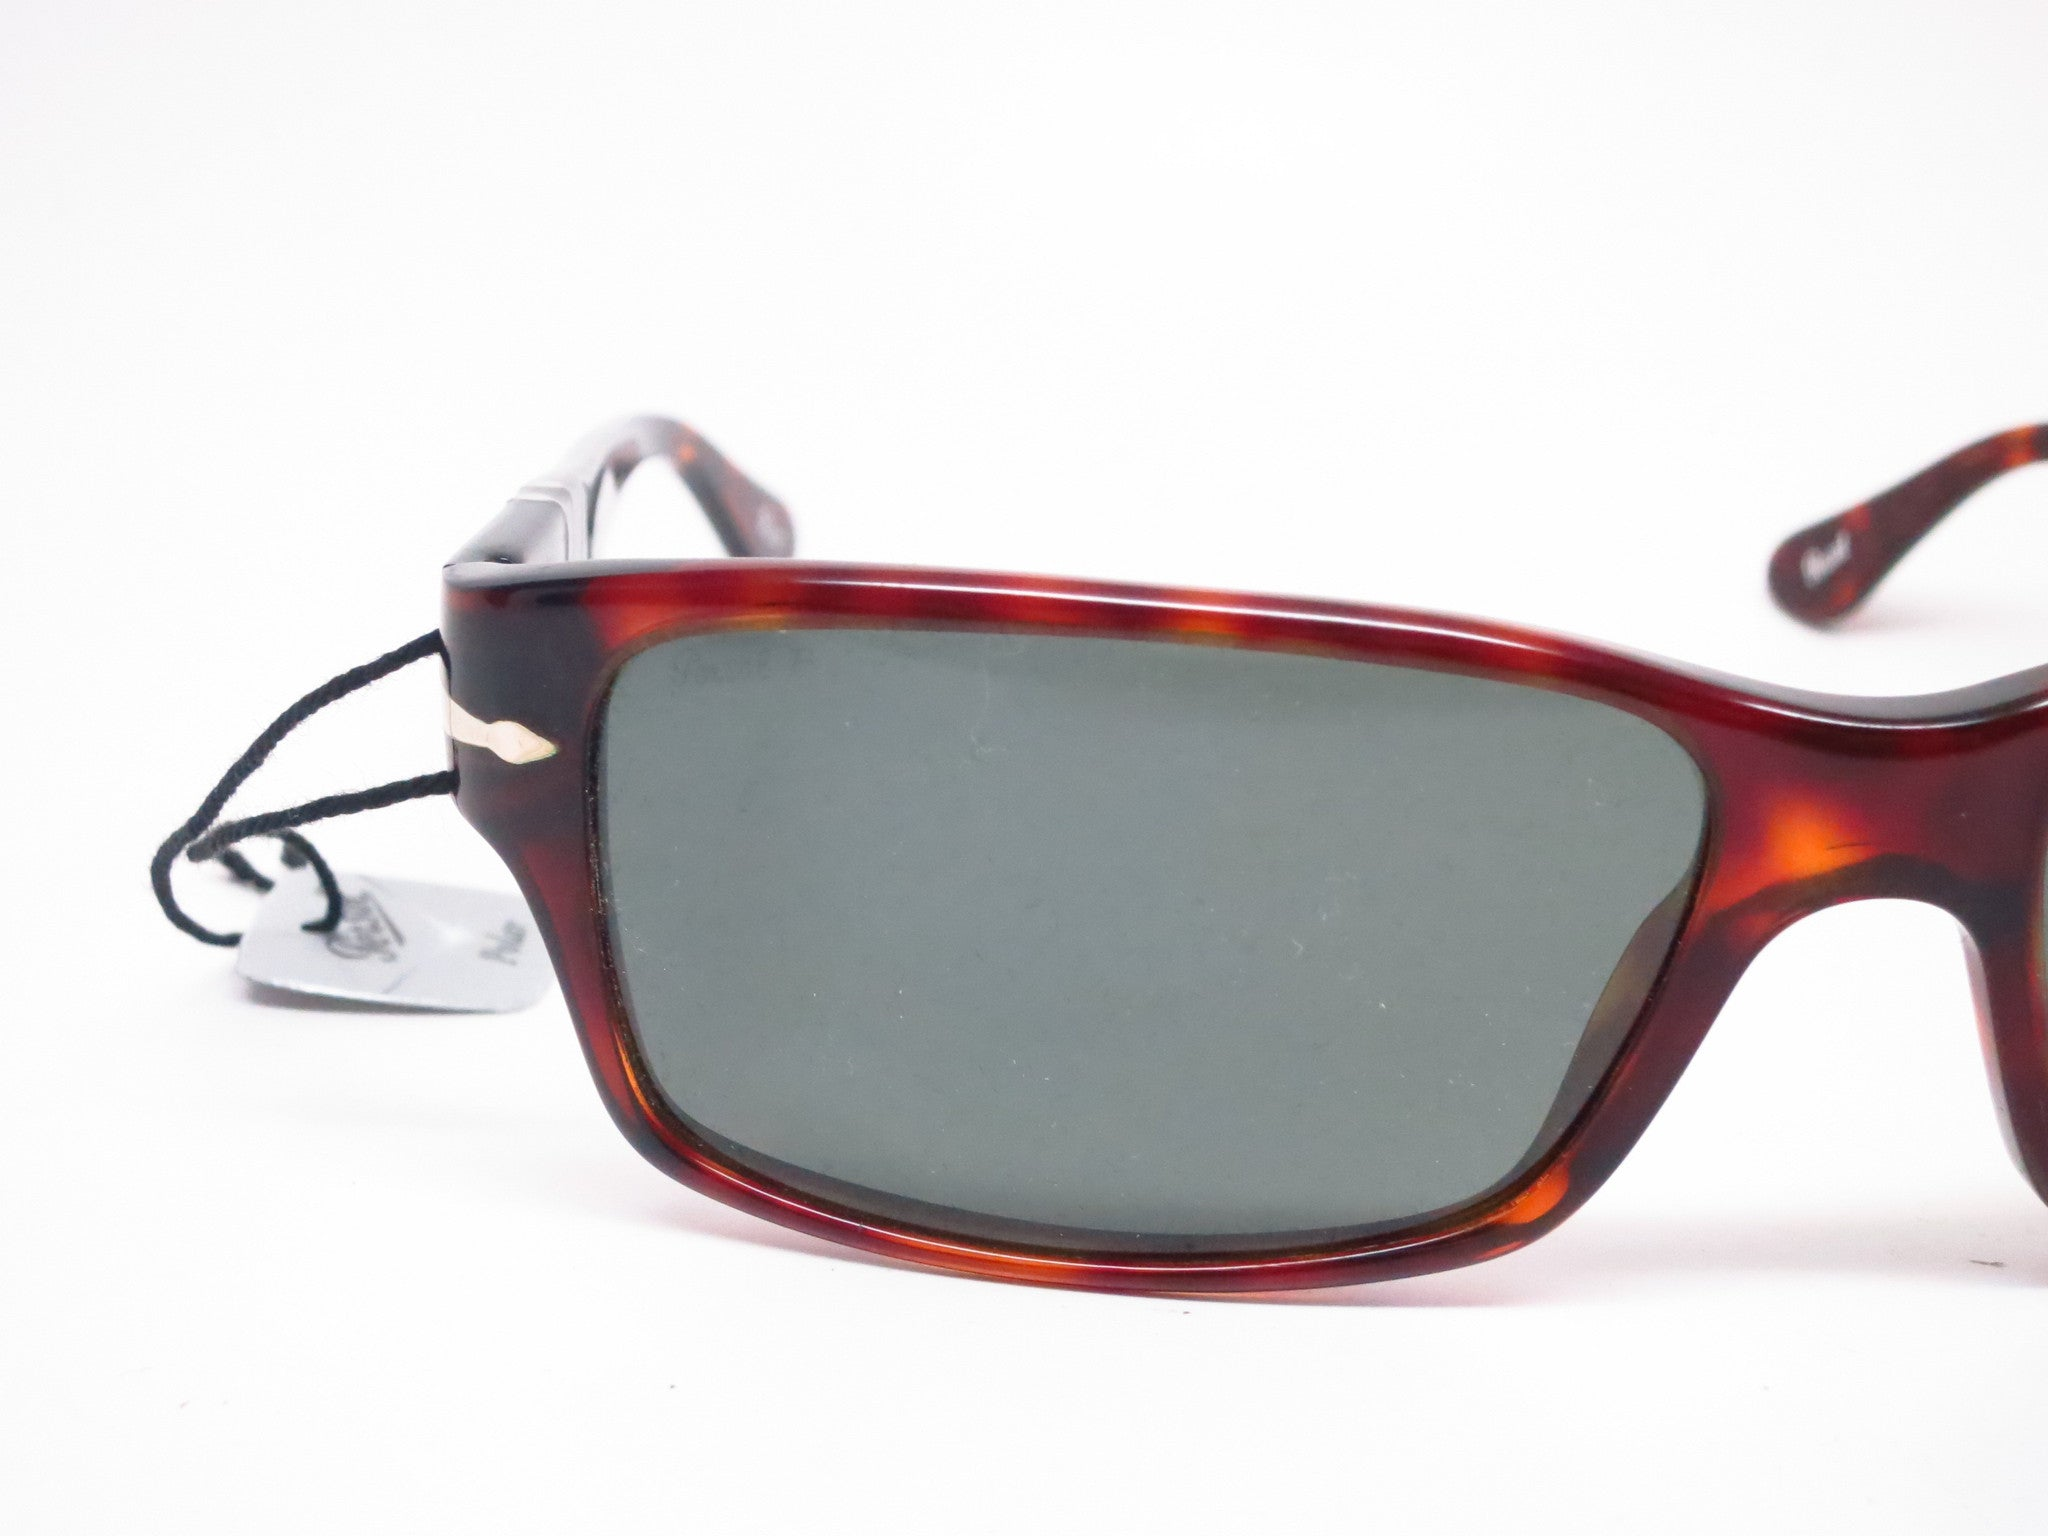 639d6629f9 ... Persol PO 2803S 24 58 Havana Polarized Sunglasses - Eye Heart Shades -  Persol ...